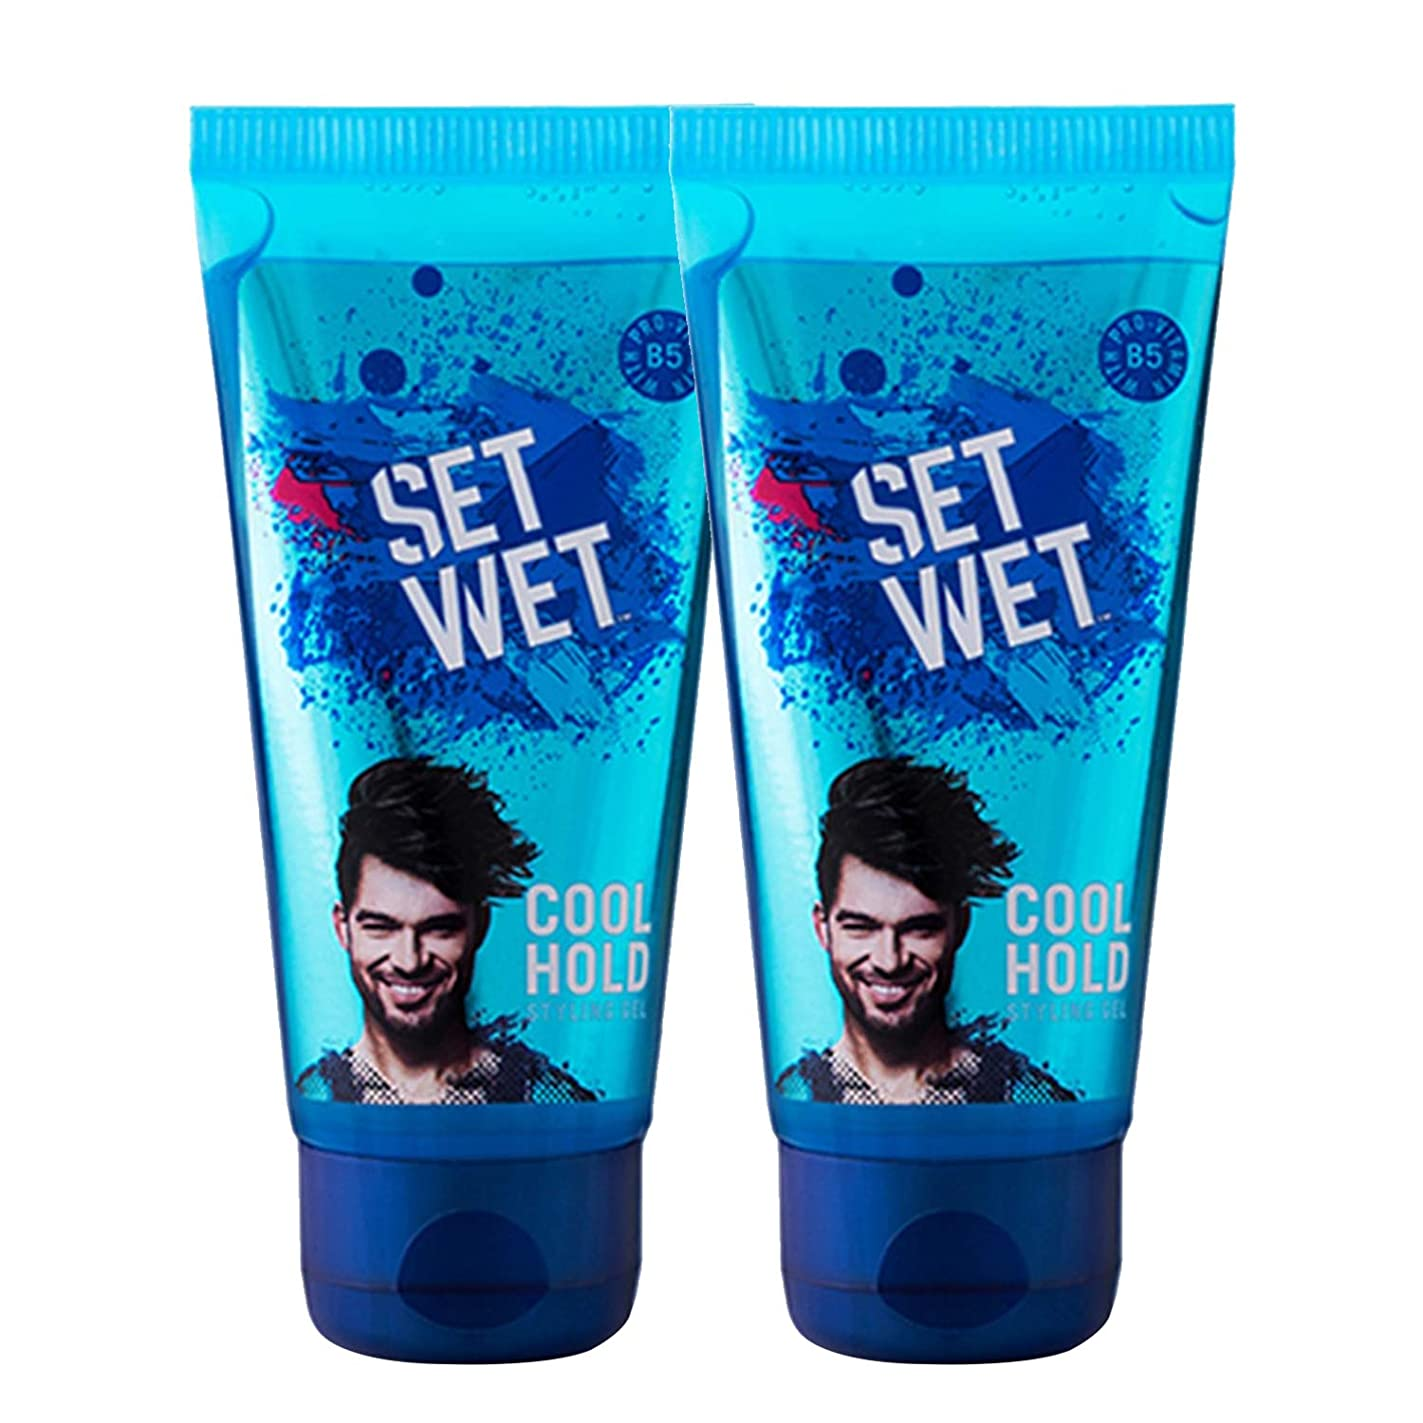 側溝スキャンダラス転送Set Wet Cool Hold Hair Styling Gel For Men, 100ml (Pack of 2)